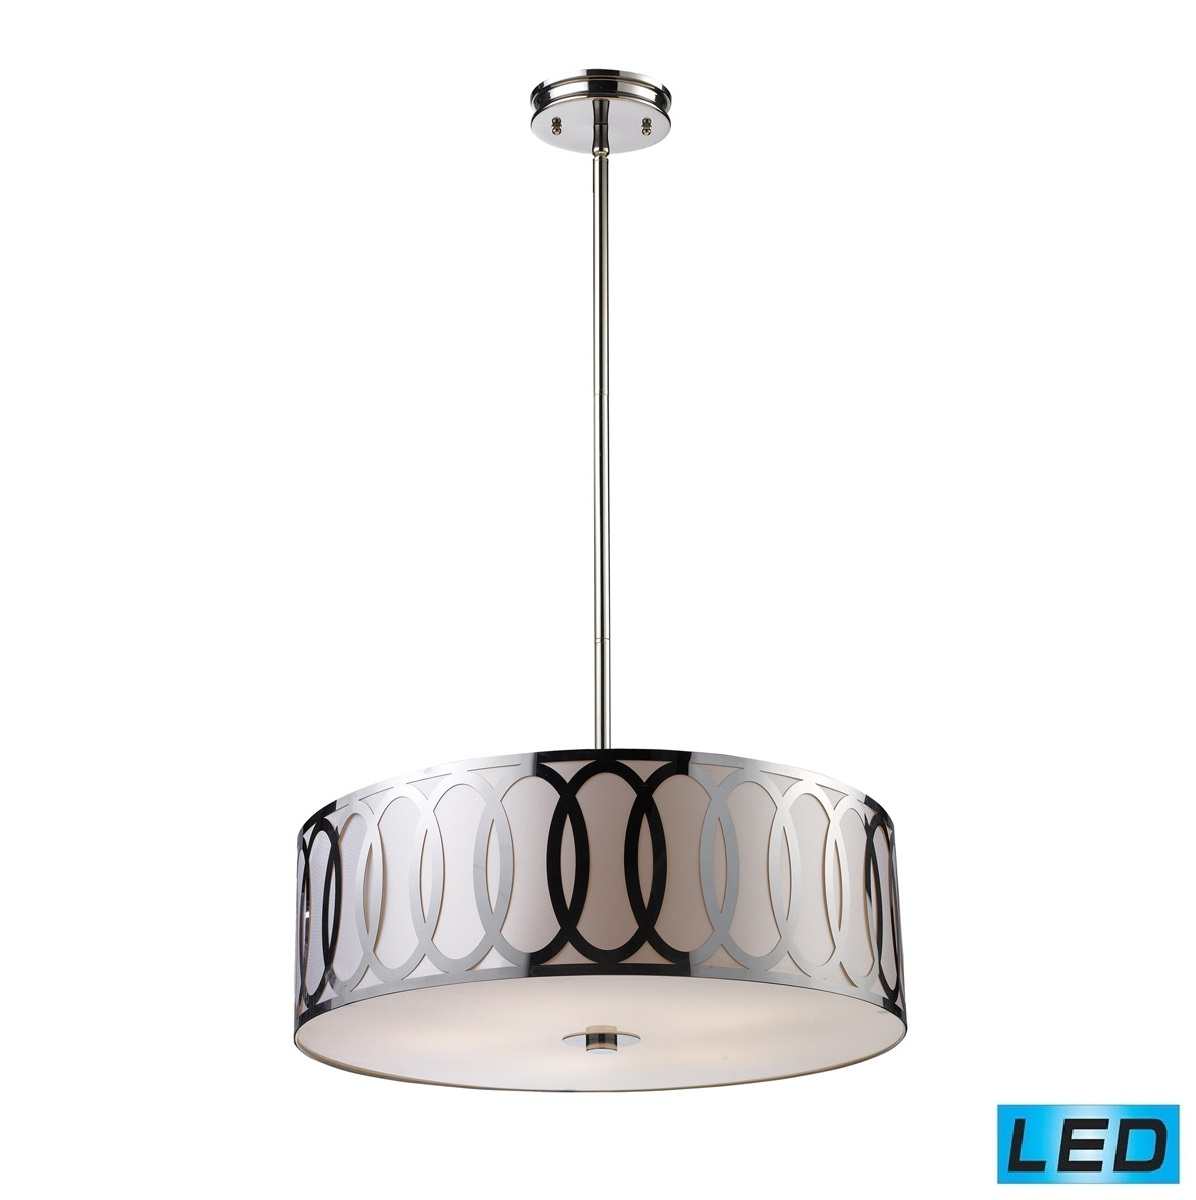 ELK Lighting Anastasia 10174 Pendant Lighting Brooklyn, New York - Accentuations Brand